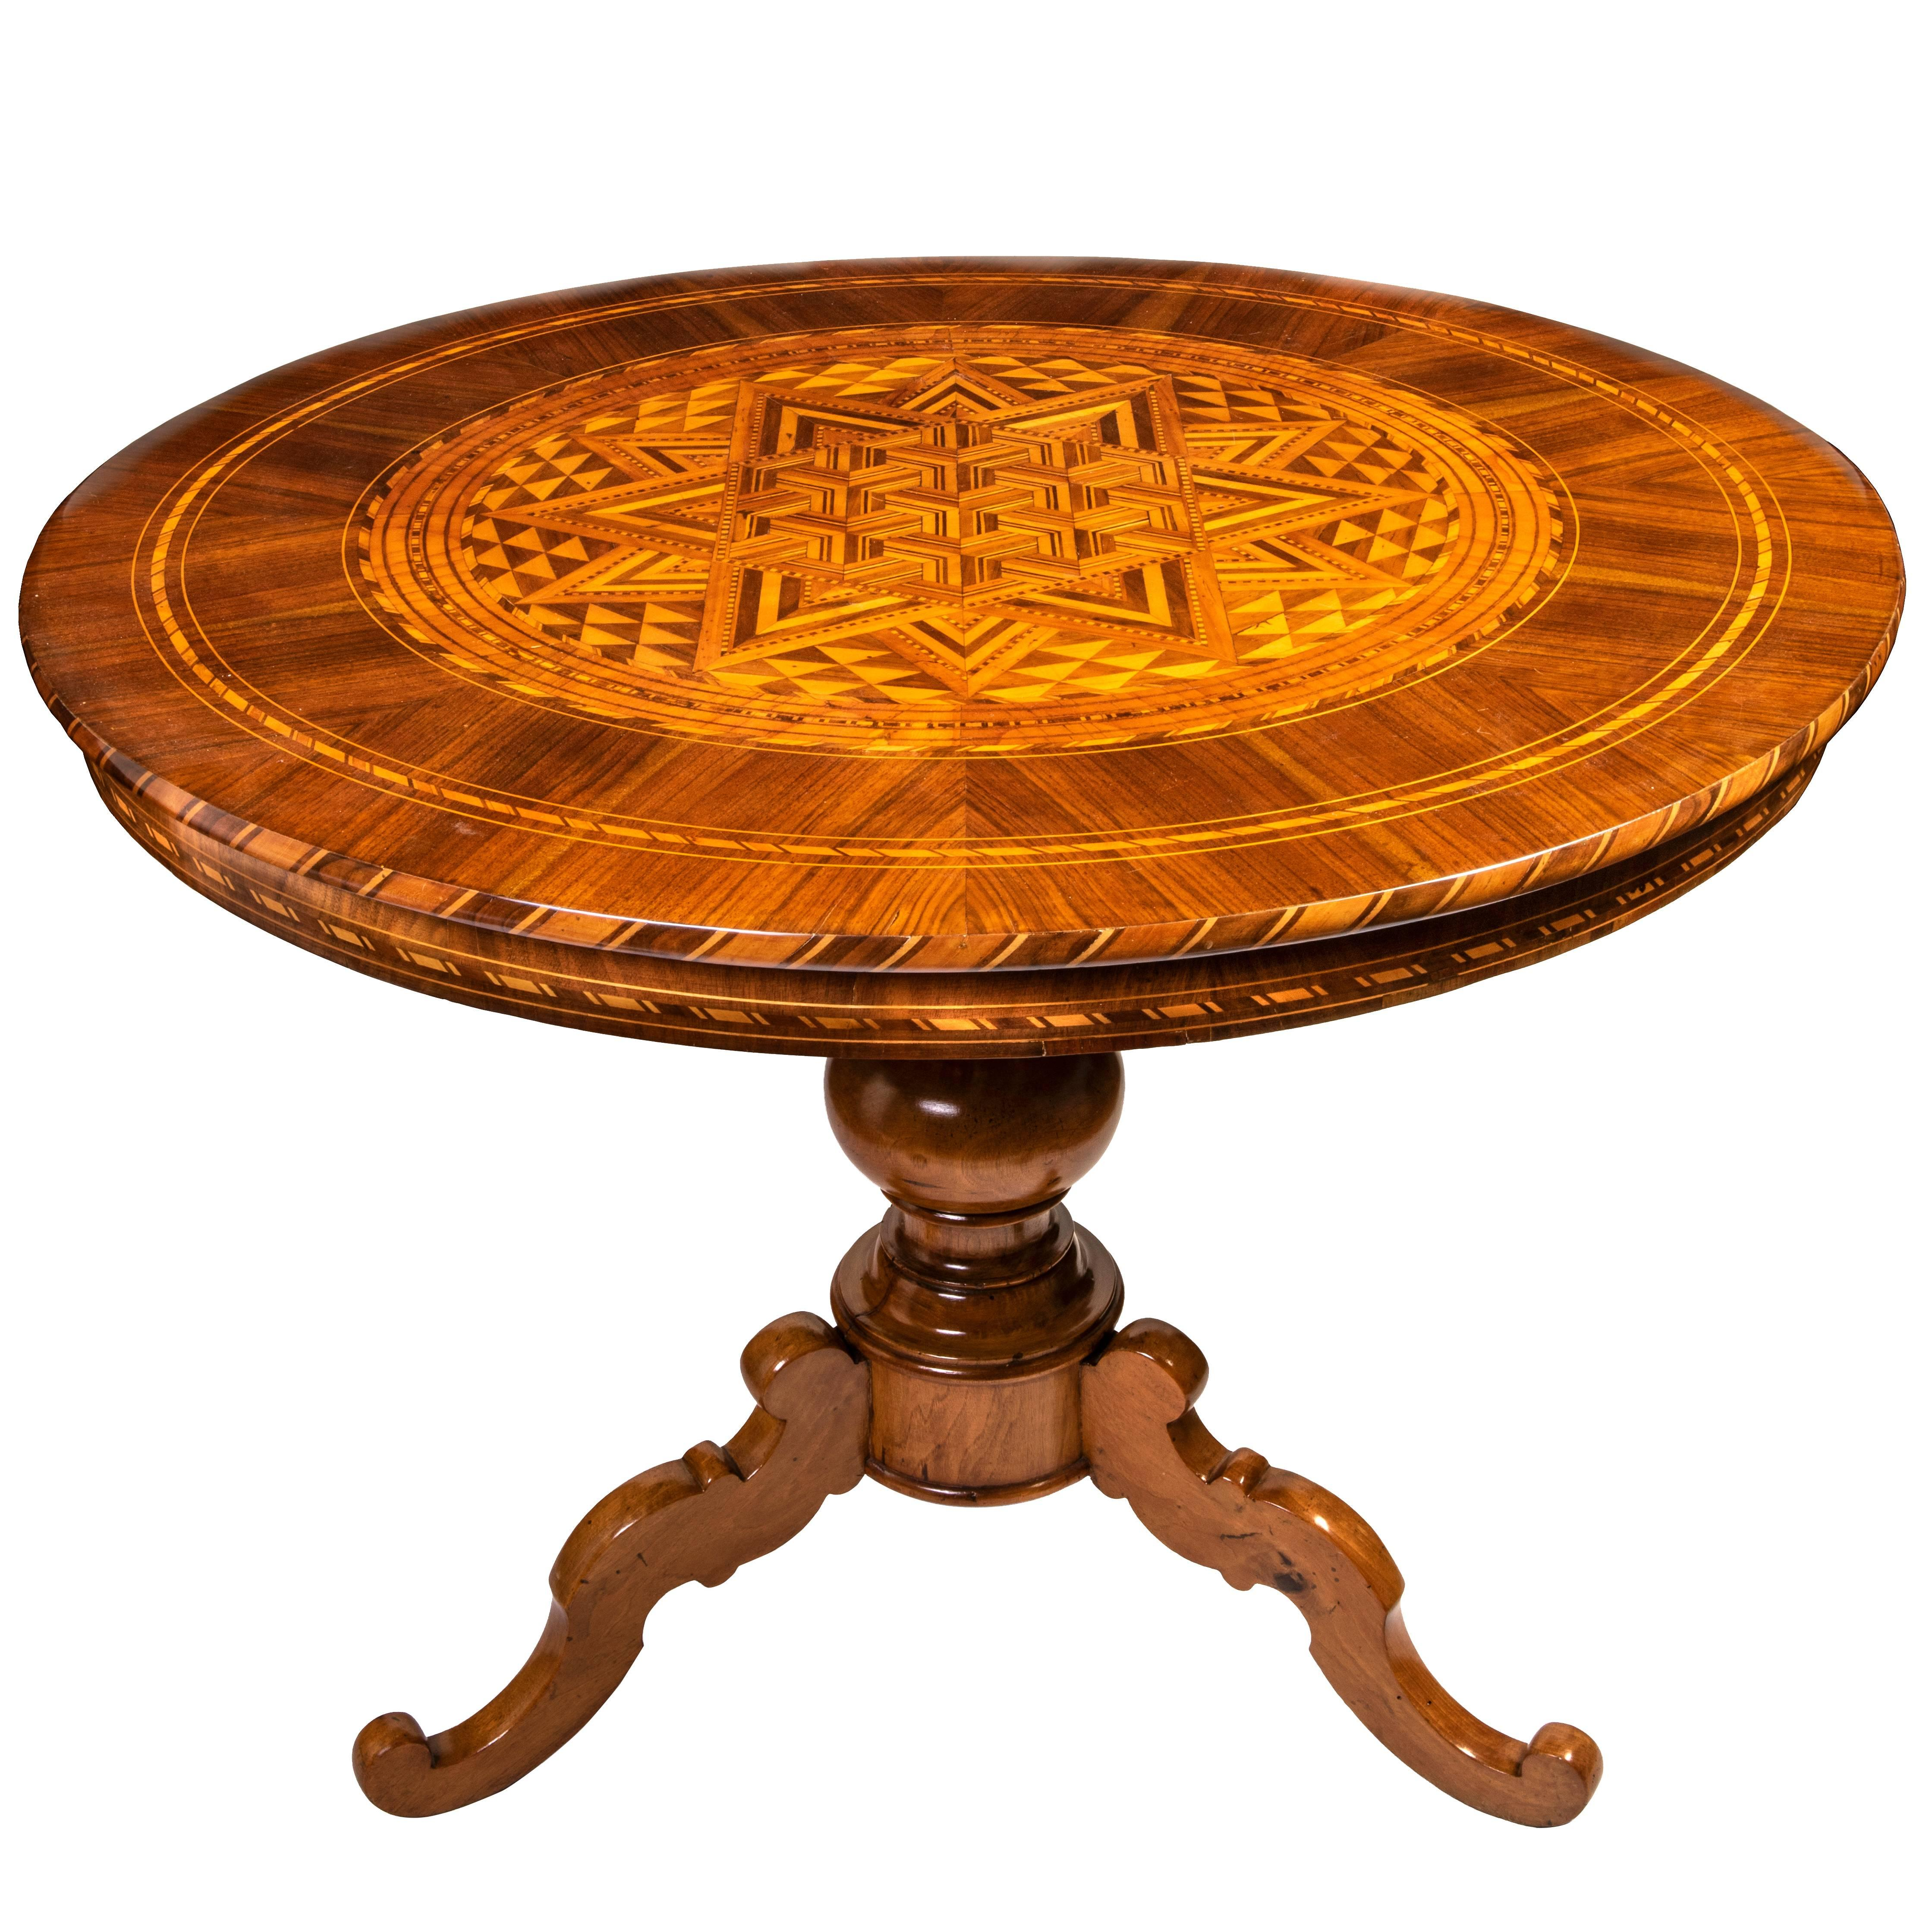 Groovy Antique 19Th Century Italian Inlay Marquetry Grand Center Hall Table Cjindustries Chair Design For Home Cjindustriesco